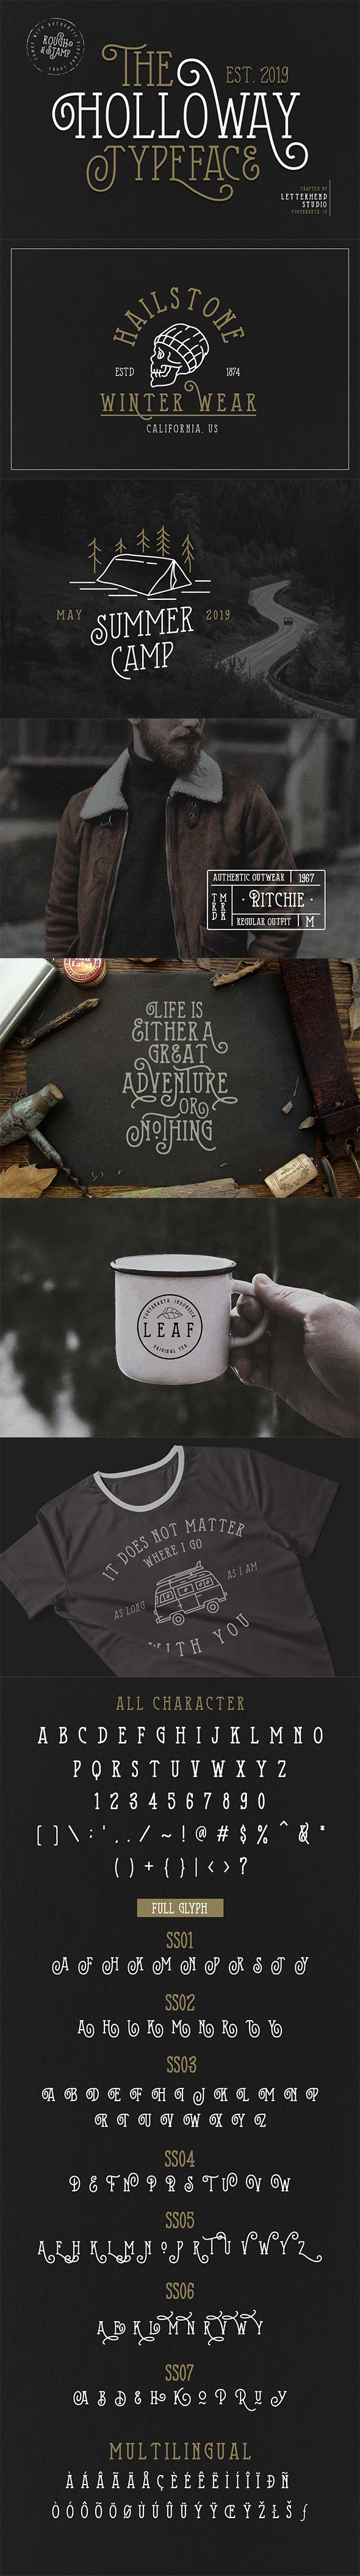 The Holloway Typeface - Serif Fonts